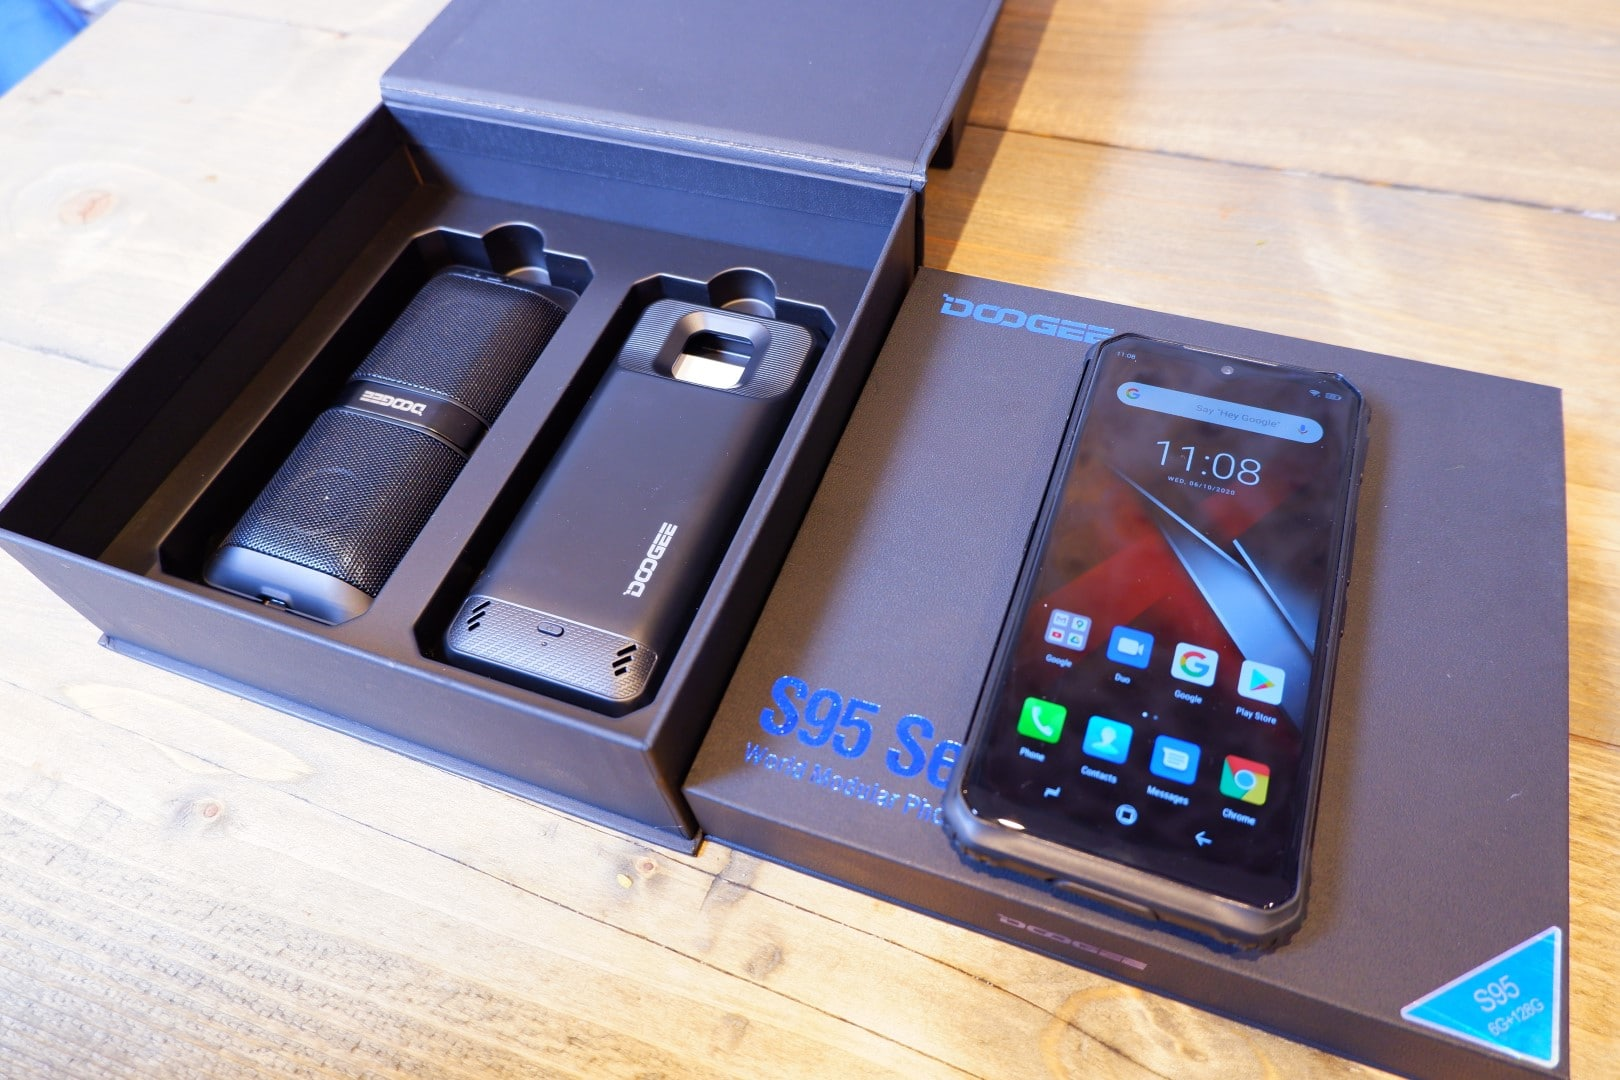 Doogee S95 Super Review – A rugged modular smartphone that's actually not bad | Mighty Gadget Blog: UK Technology News and Reviews